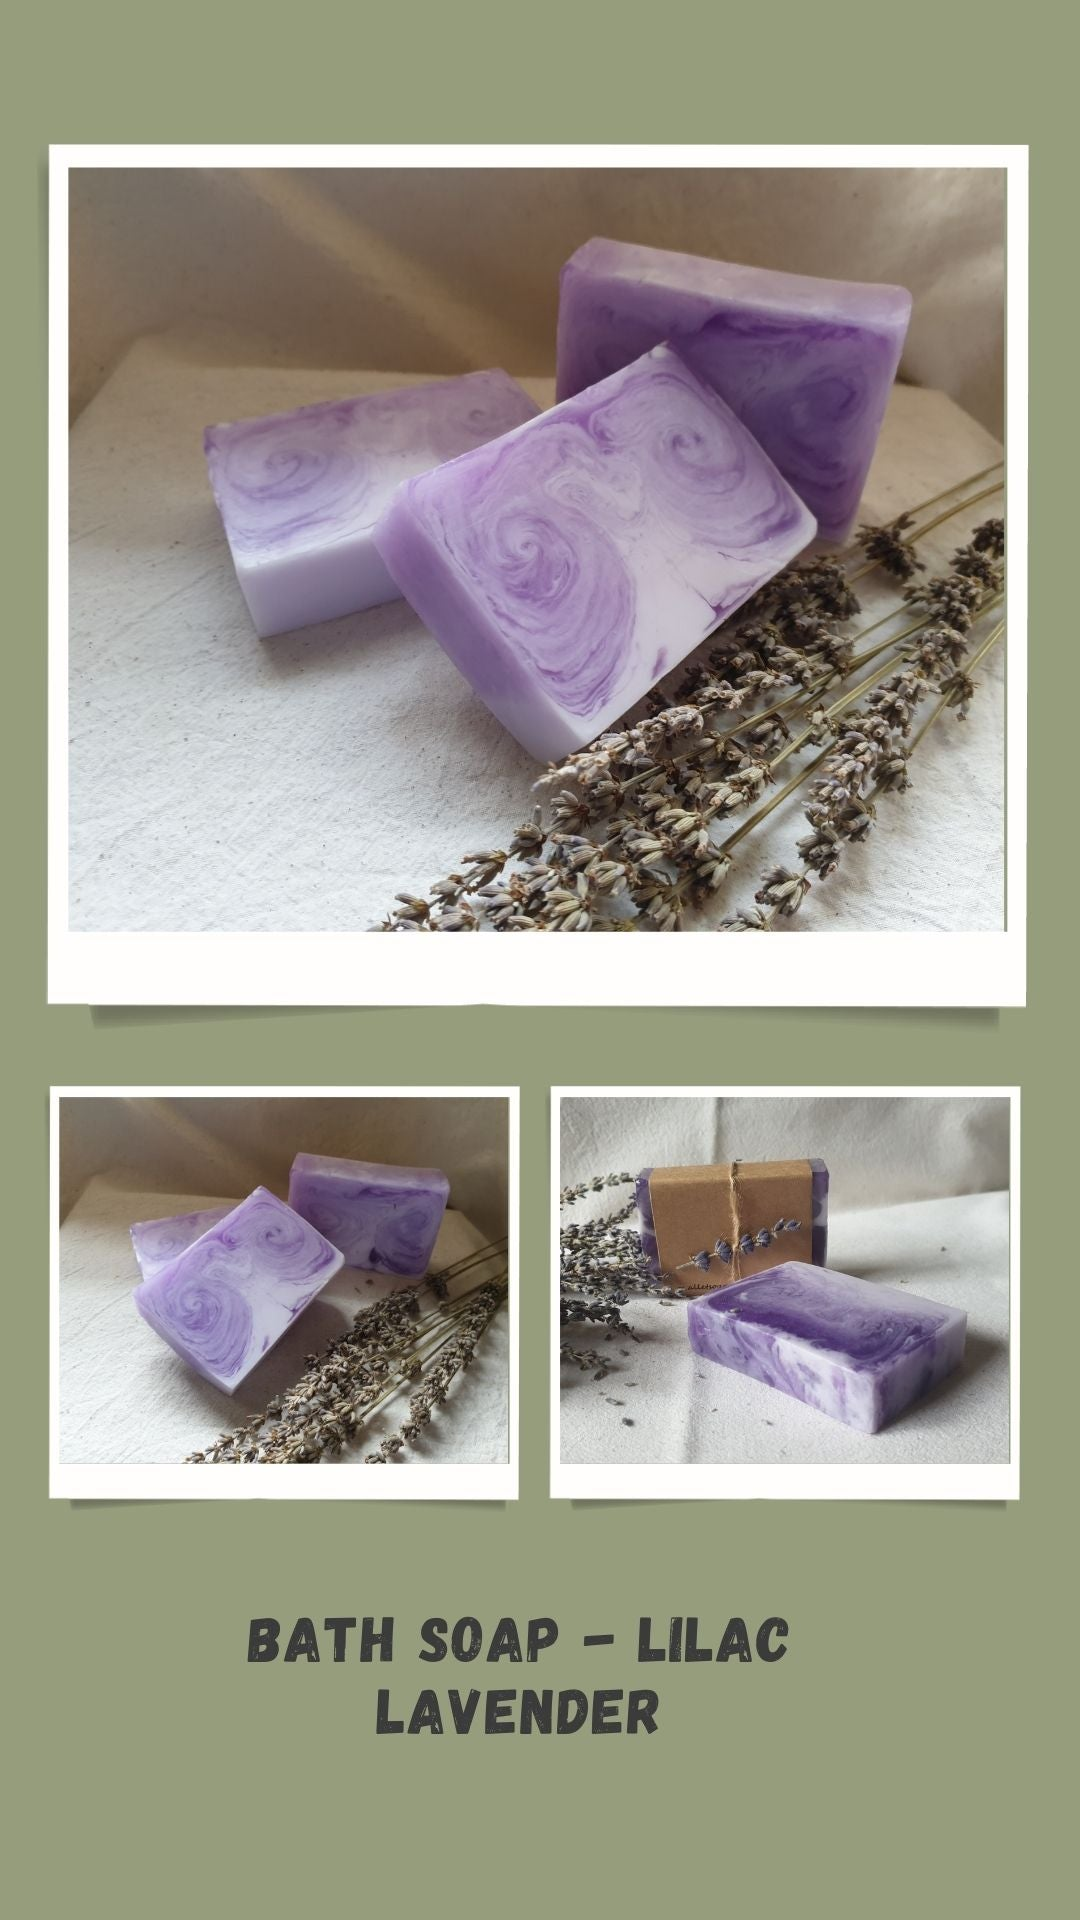 Bath Soap - Lilac Lavender